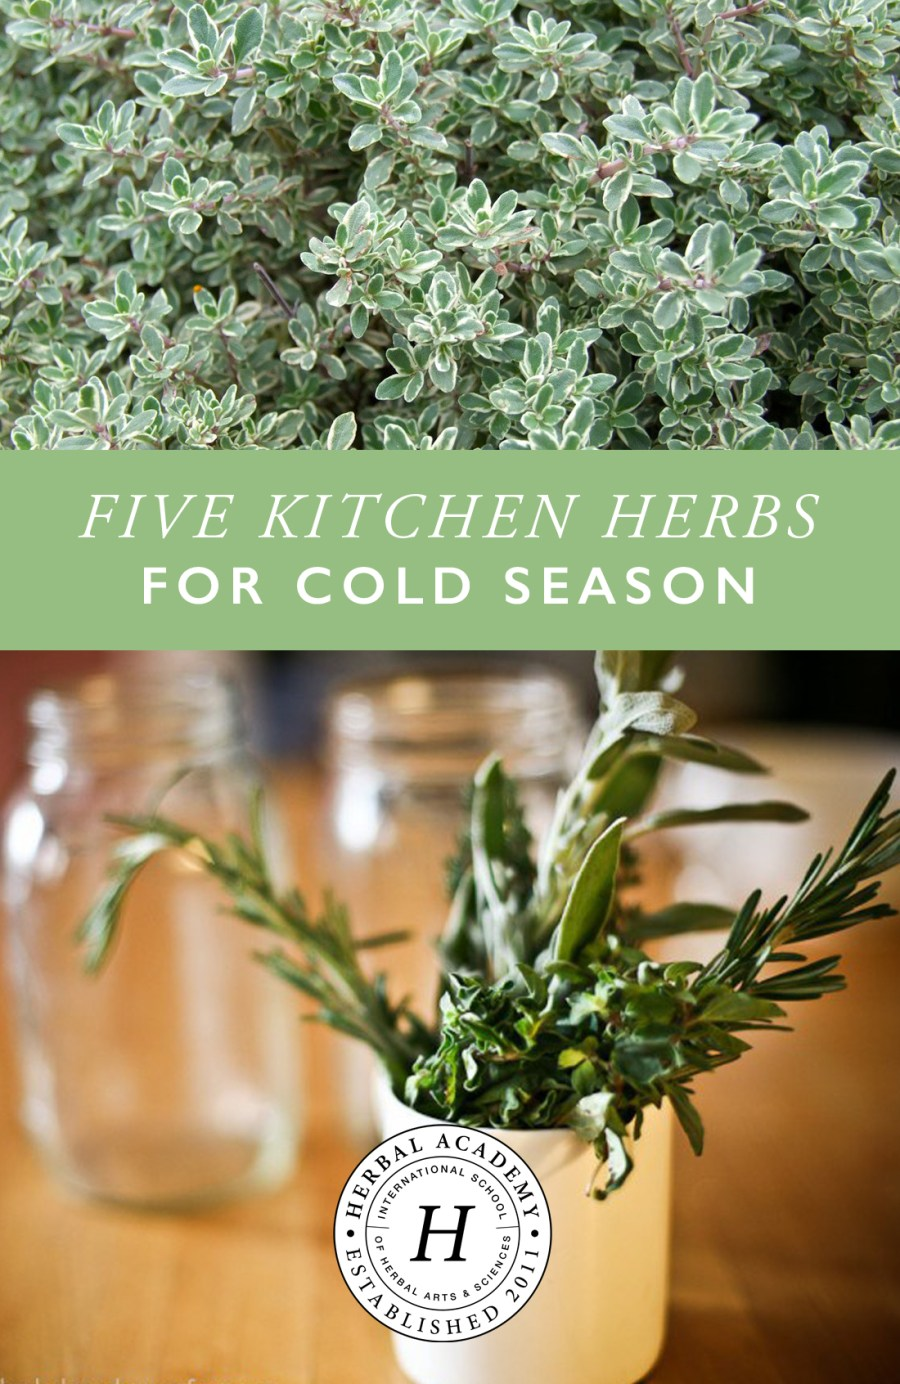 FIVE KITCHEN HERBS FOR COLD SEASON